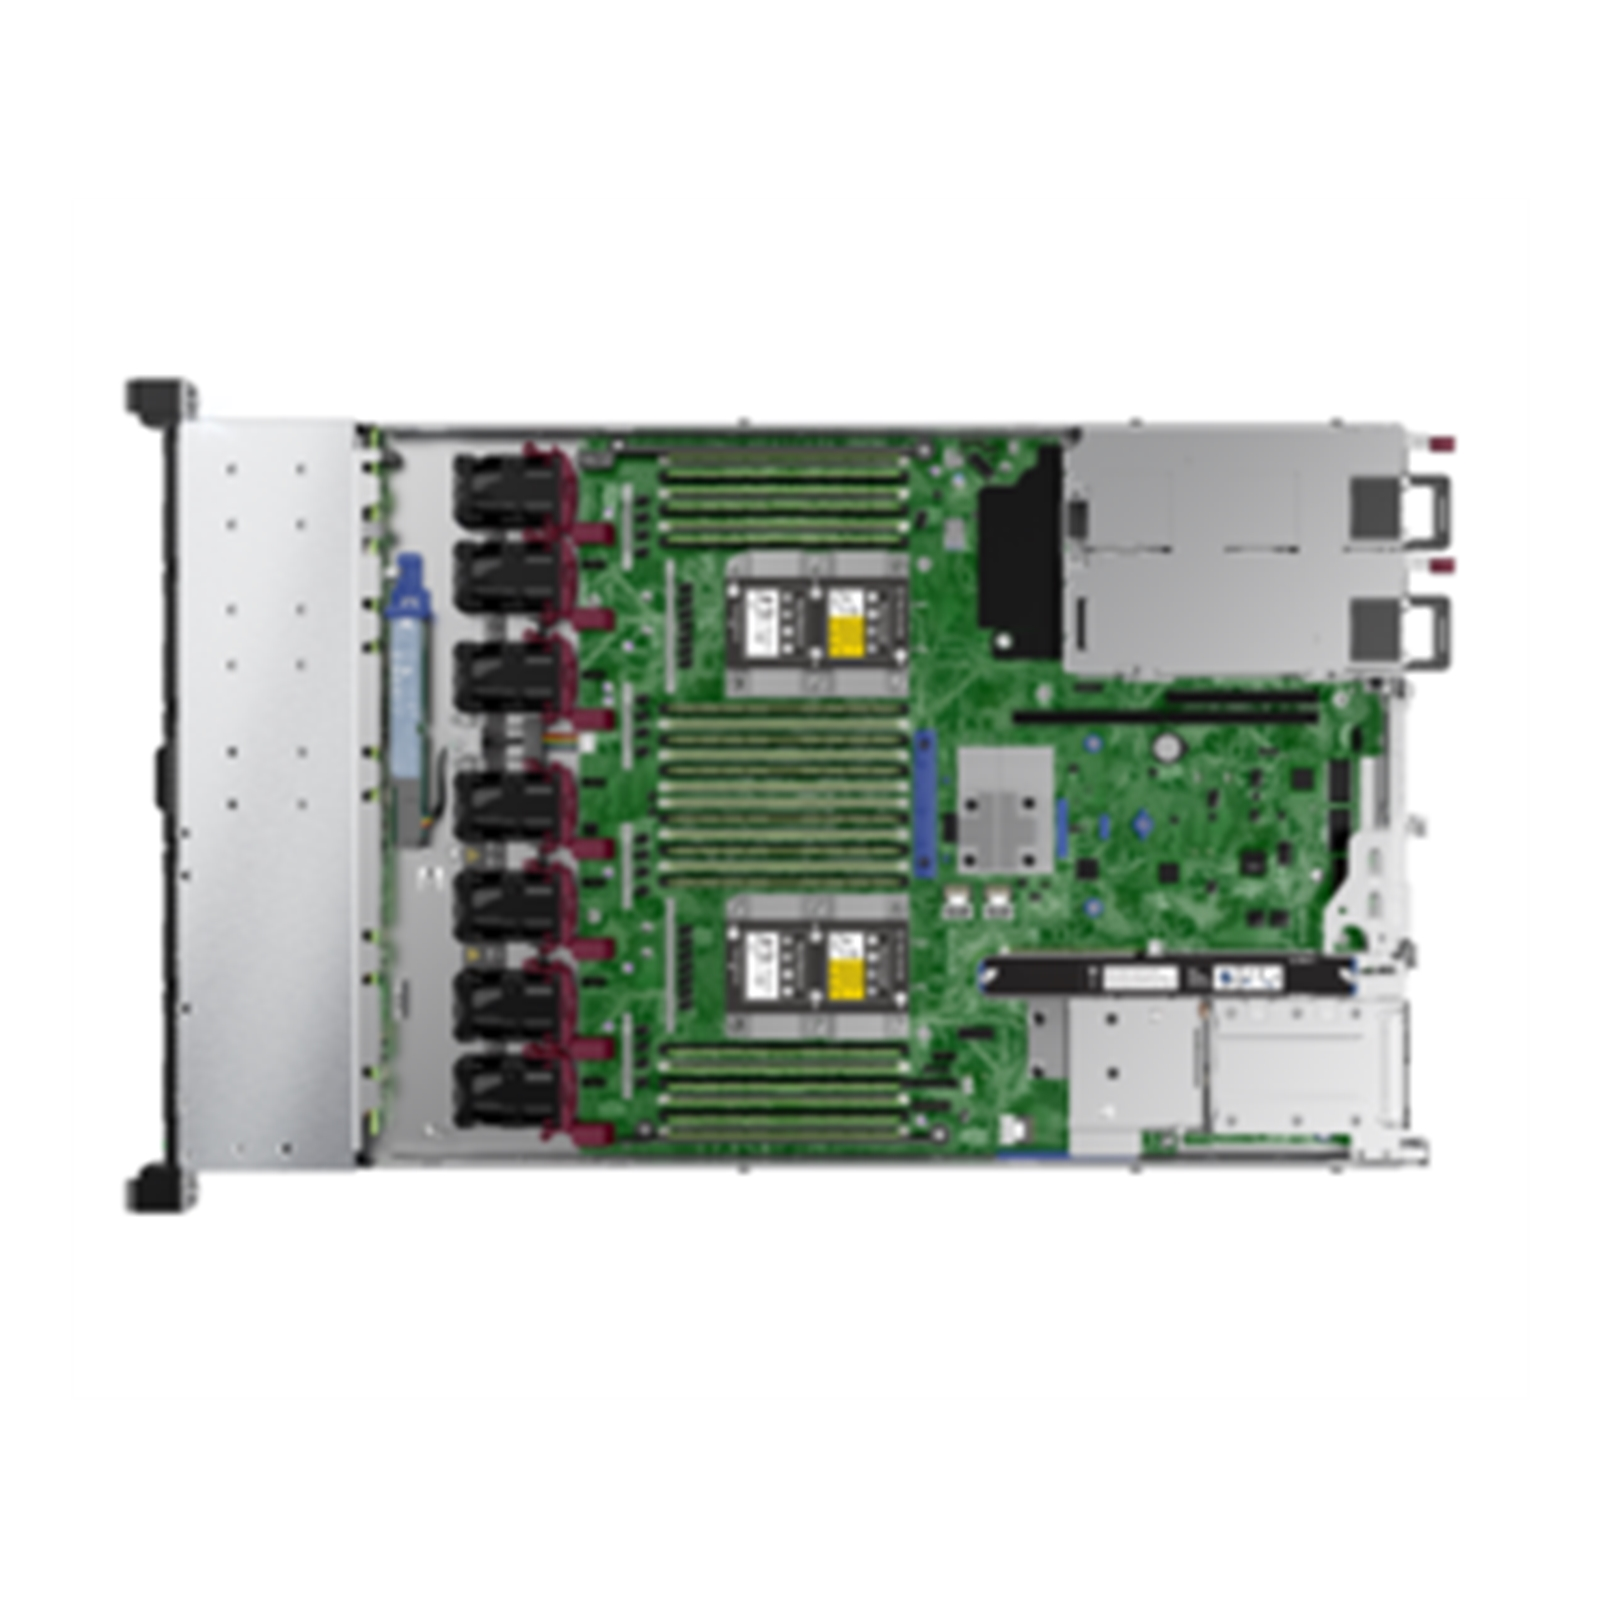 HPE Rack Servers - Hewlett Packard 867963-B21 | Servers Plus